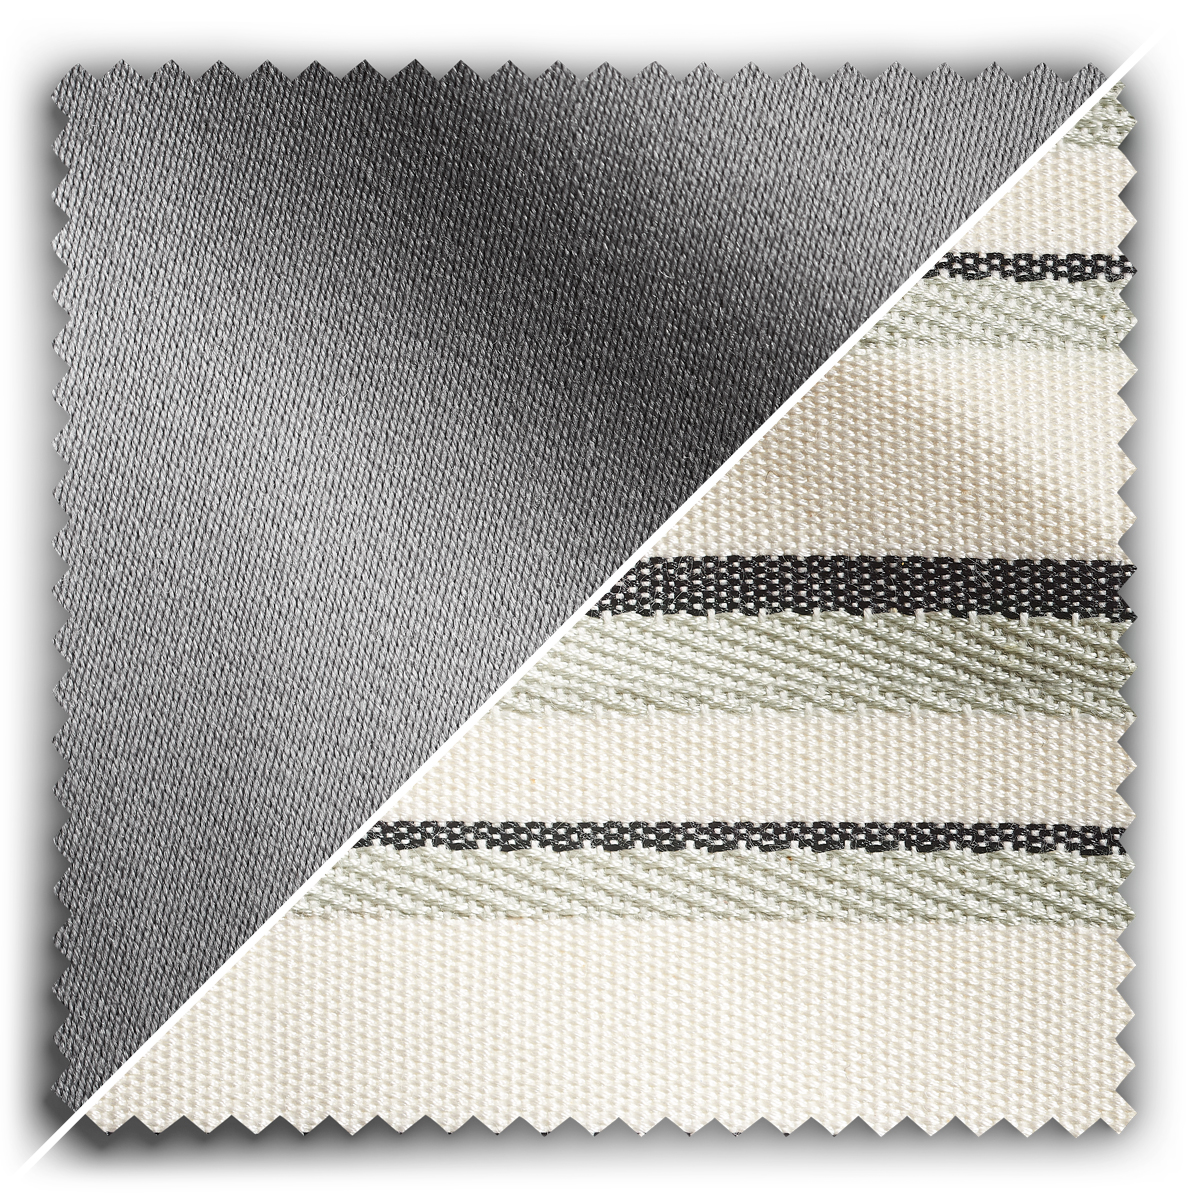 Image of Studio Stripes Silver Grey Studio Wool fabric